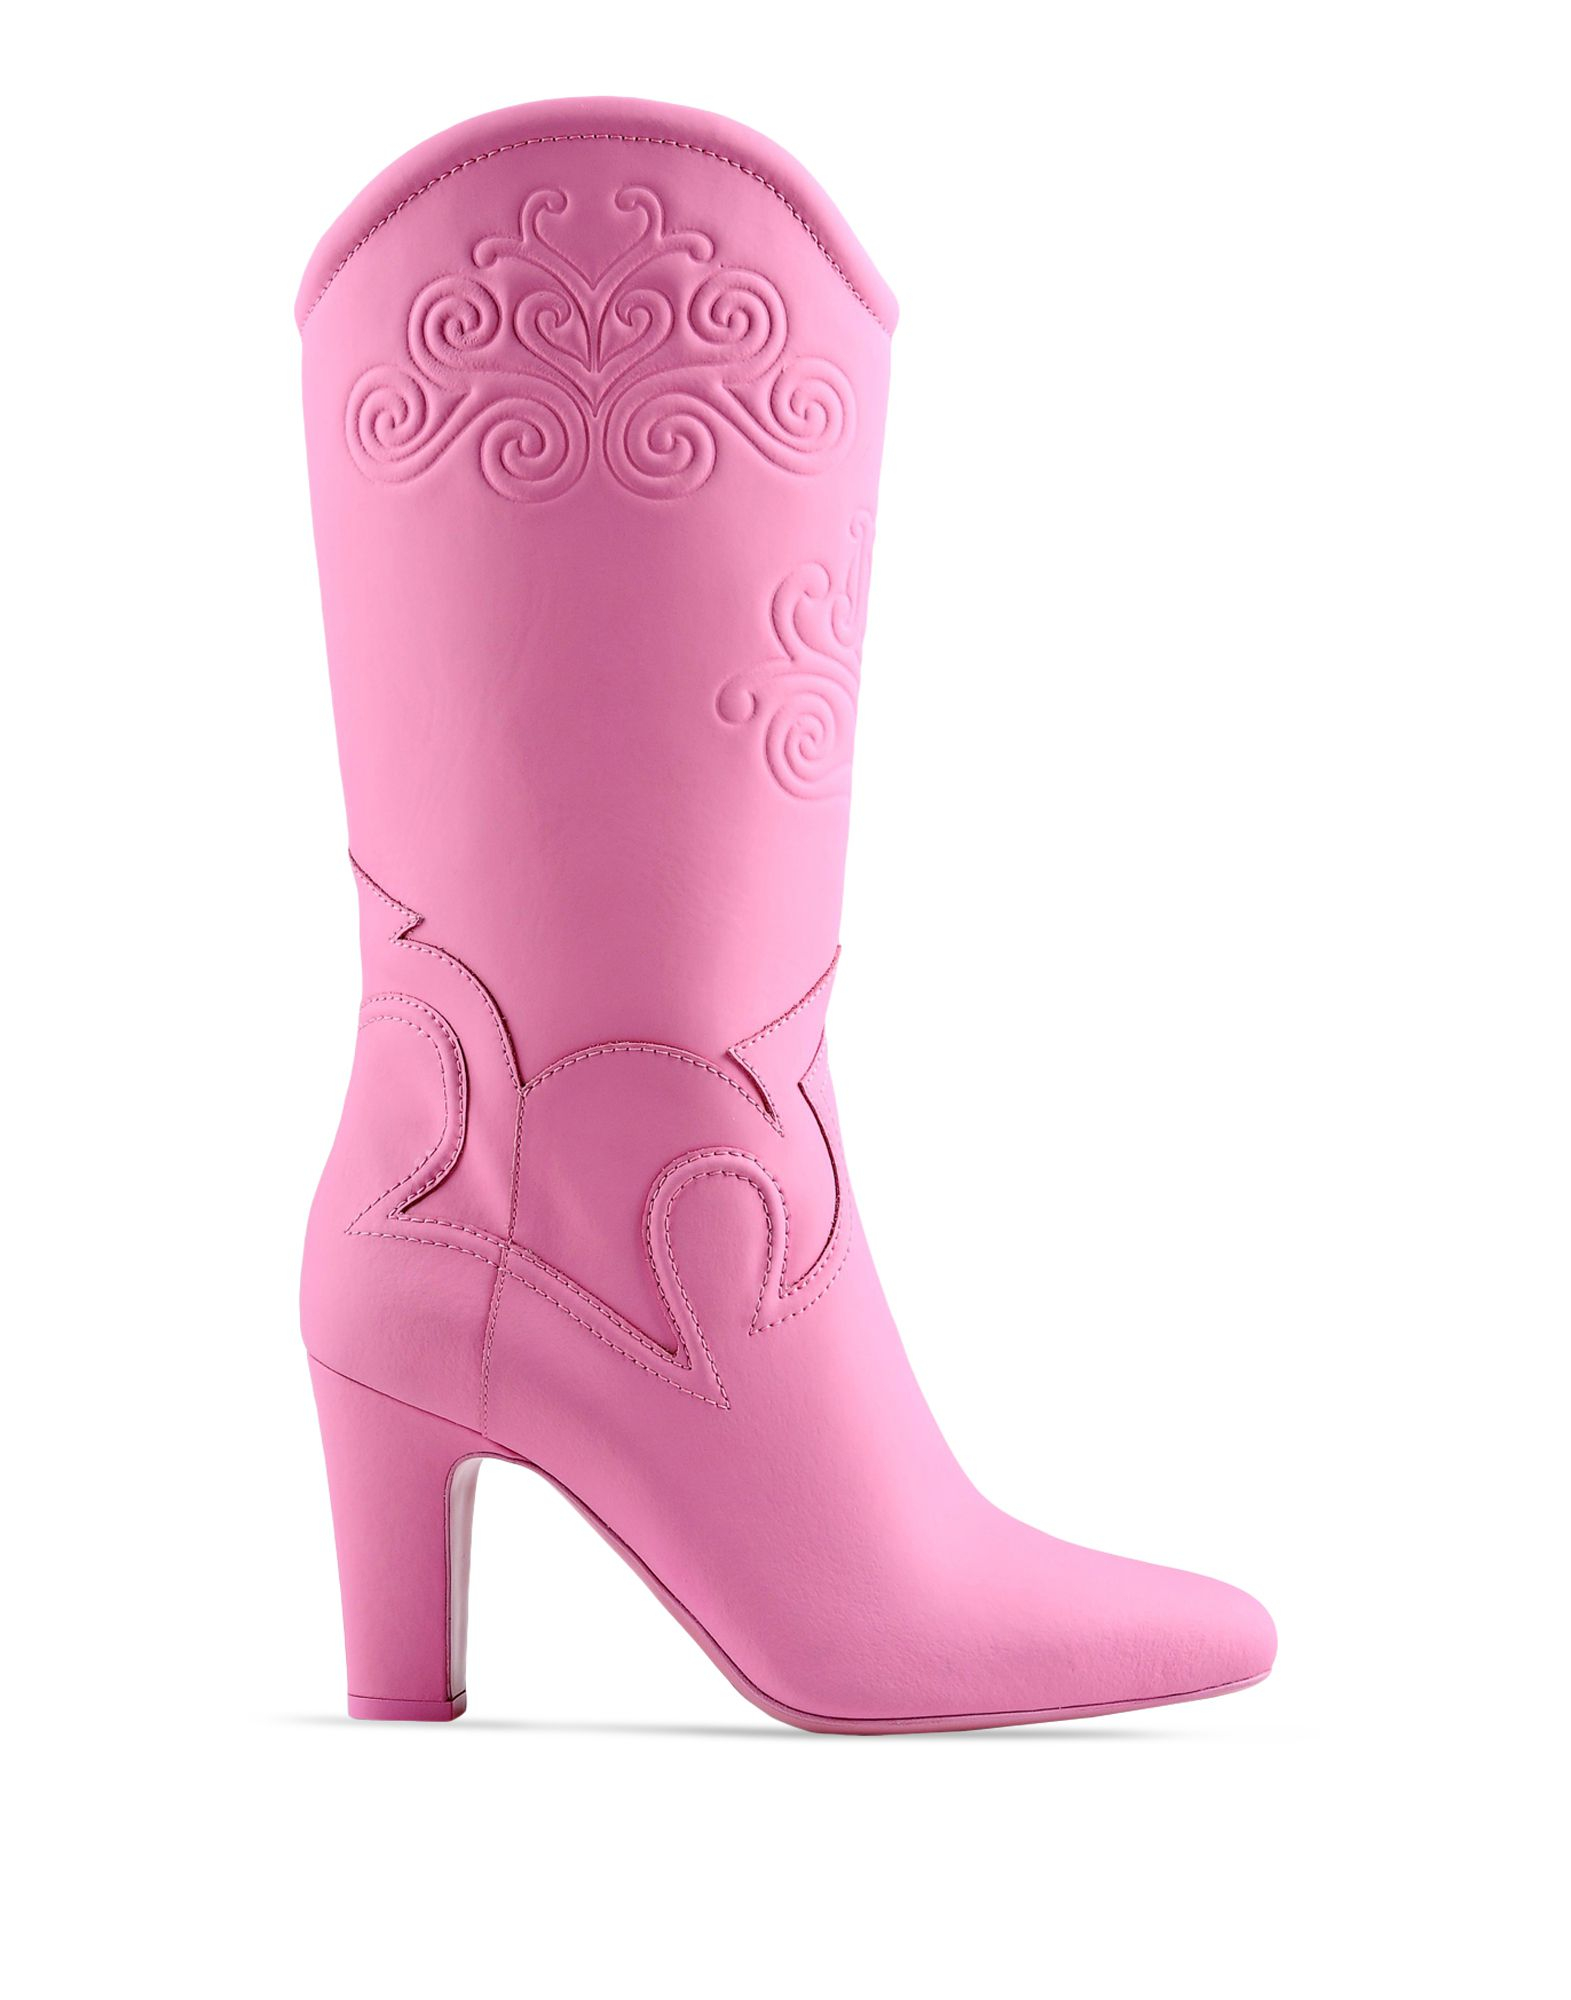 Moschino High-Heeled Boots in Pink